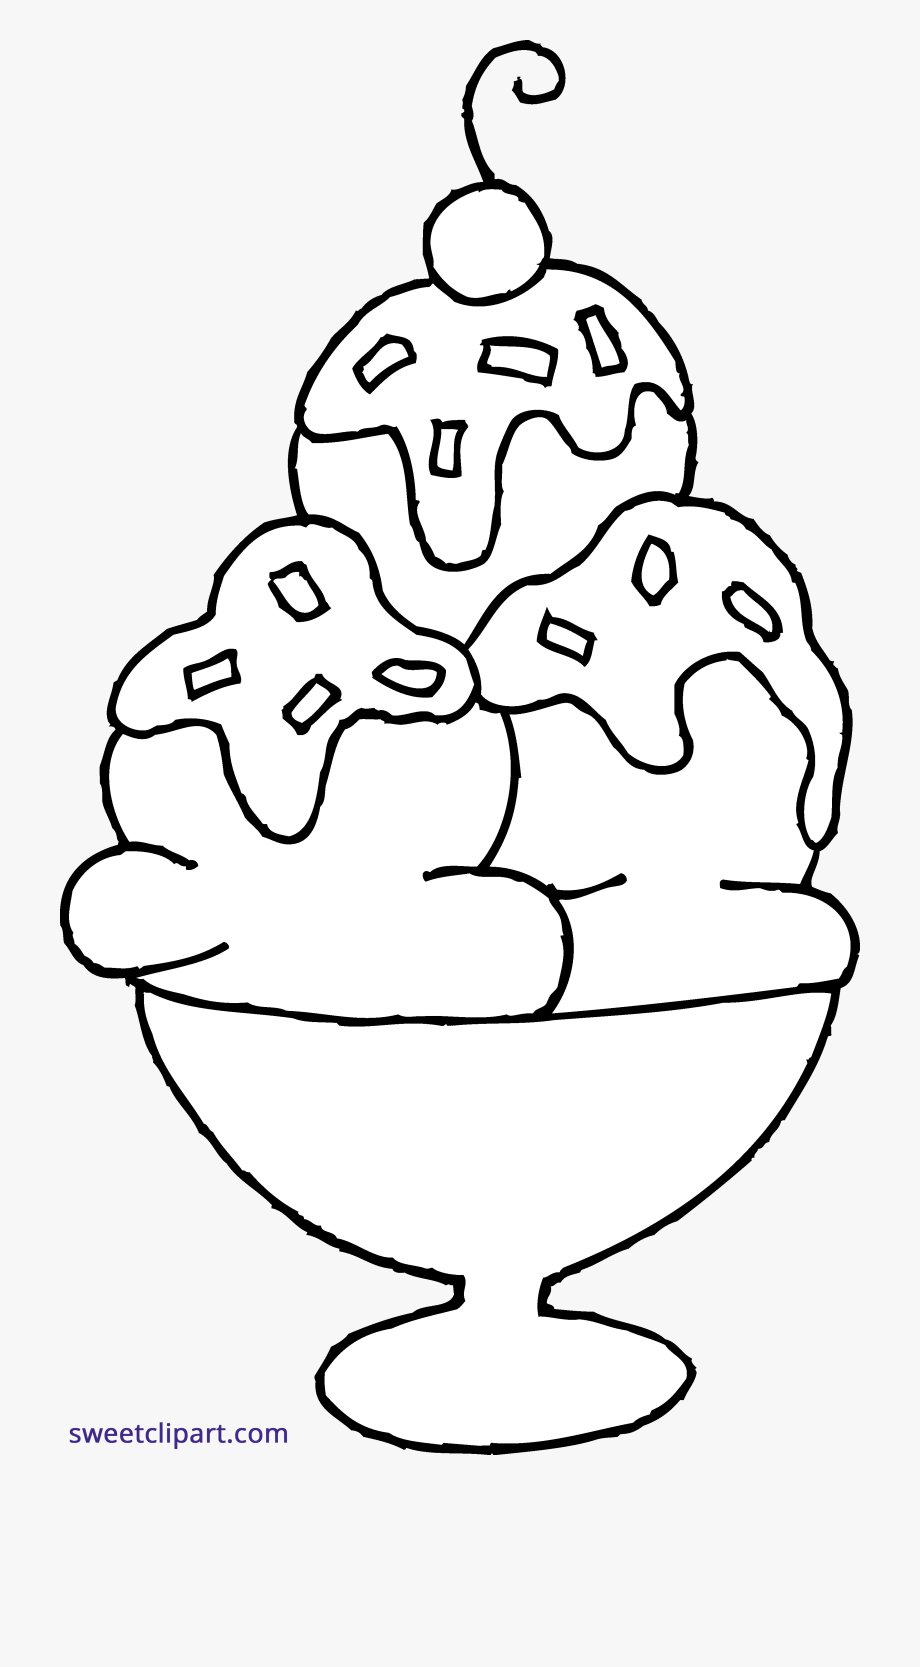 Ice Cream Sundae Coloring Page Clipart Sweet Clip Art.